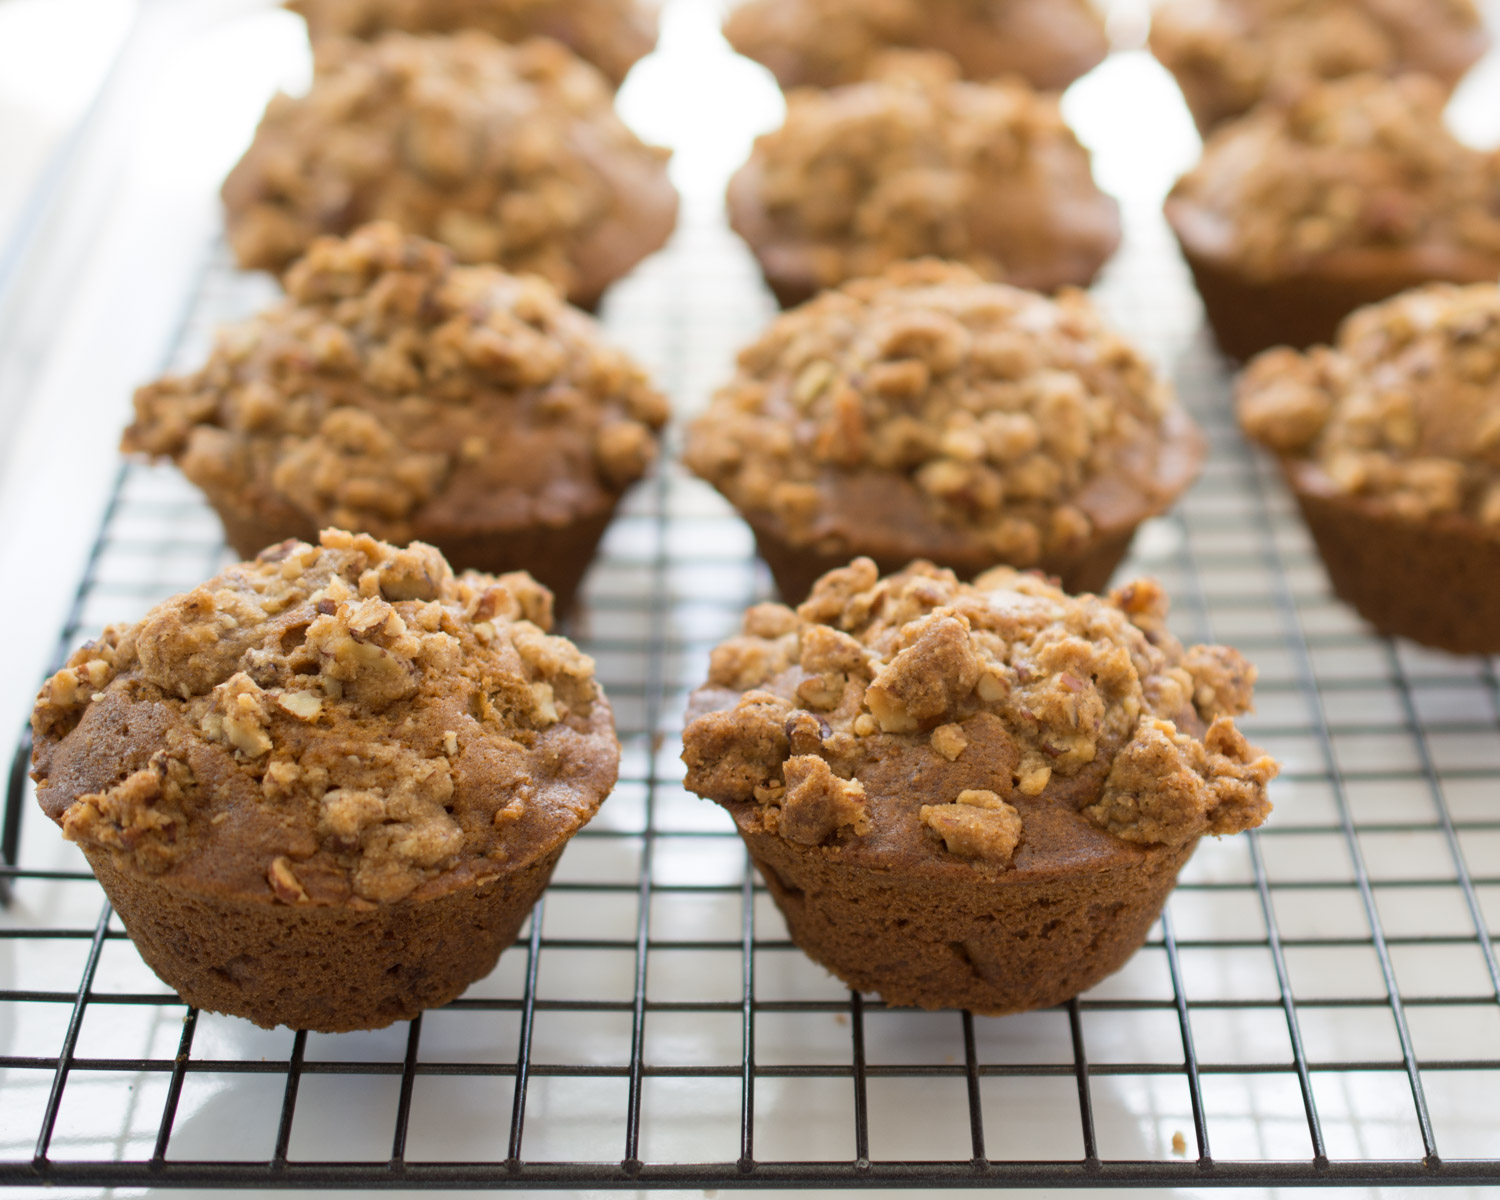 Carrot Cake Muffins cooling on the counter.